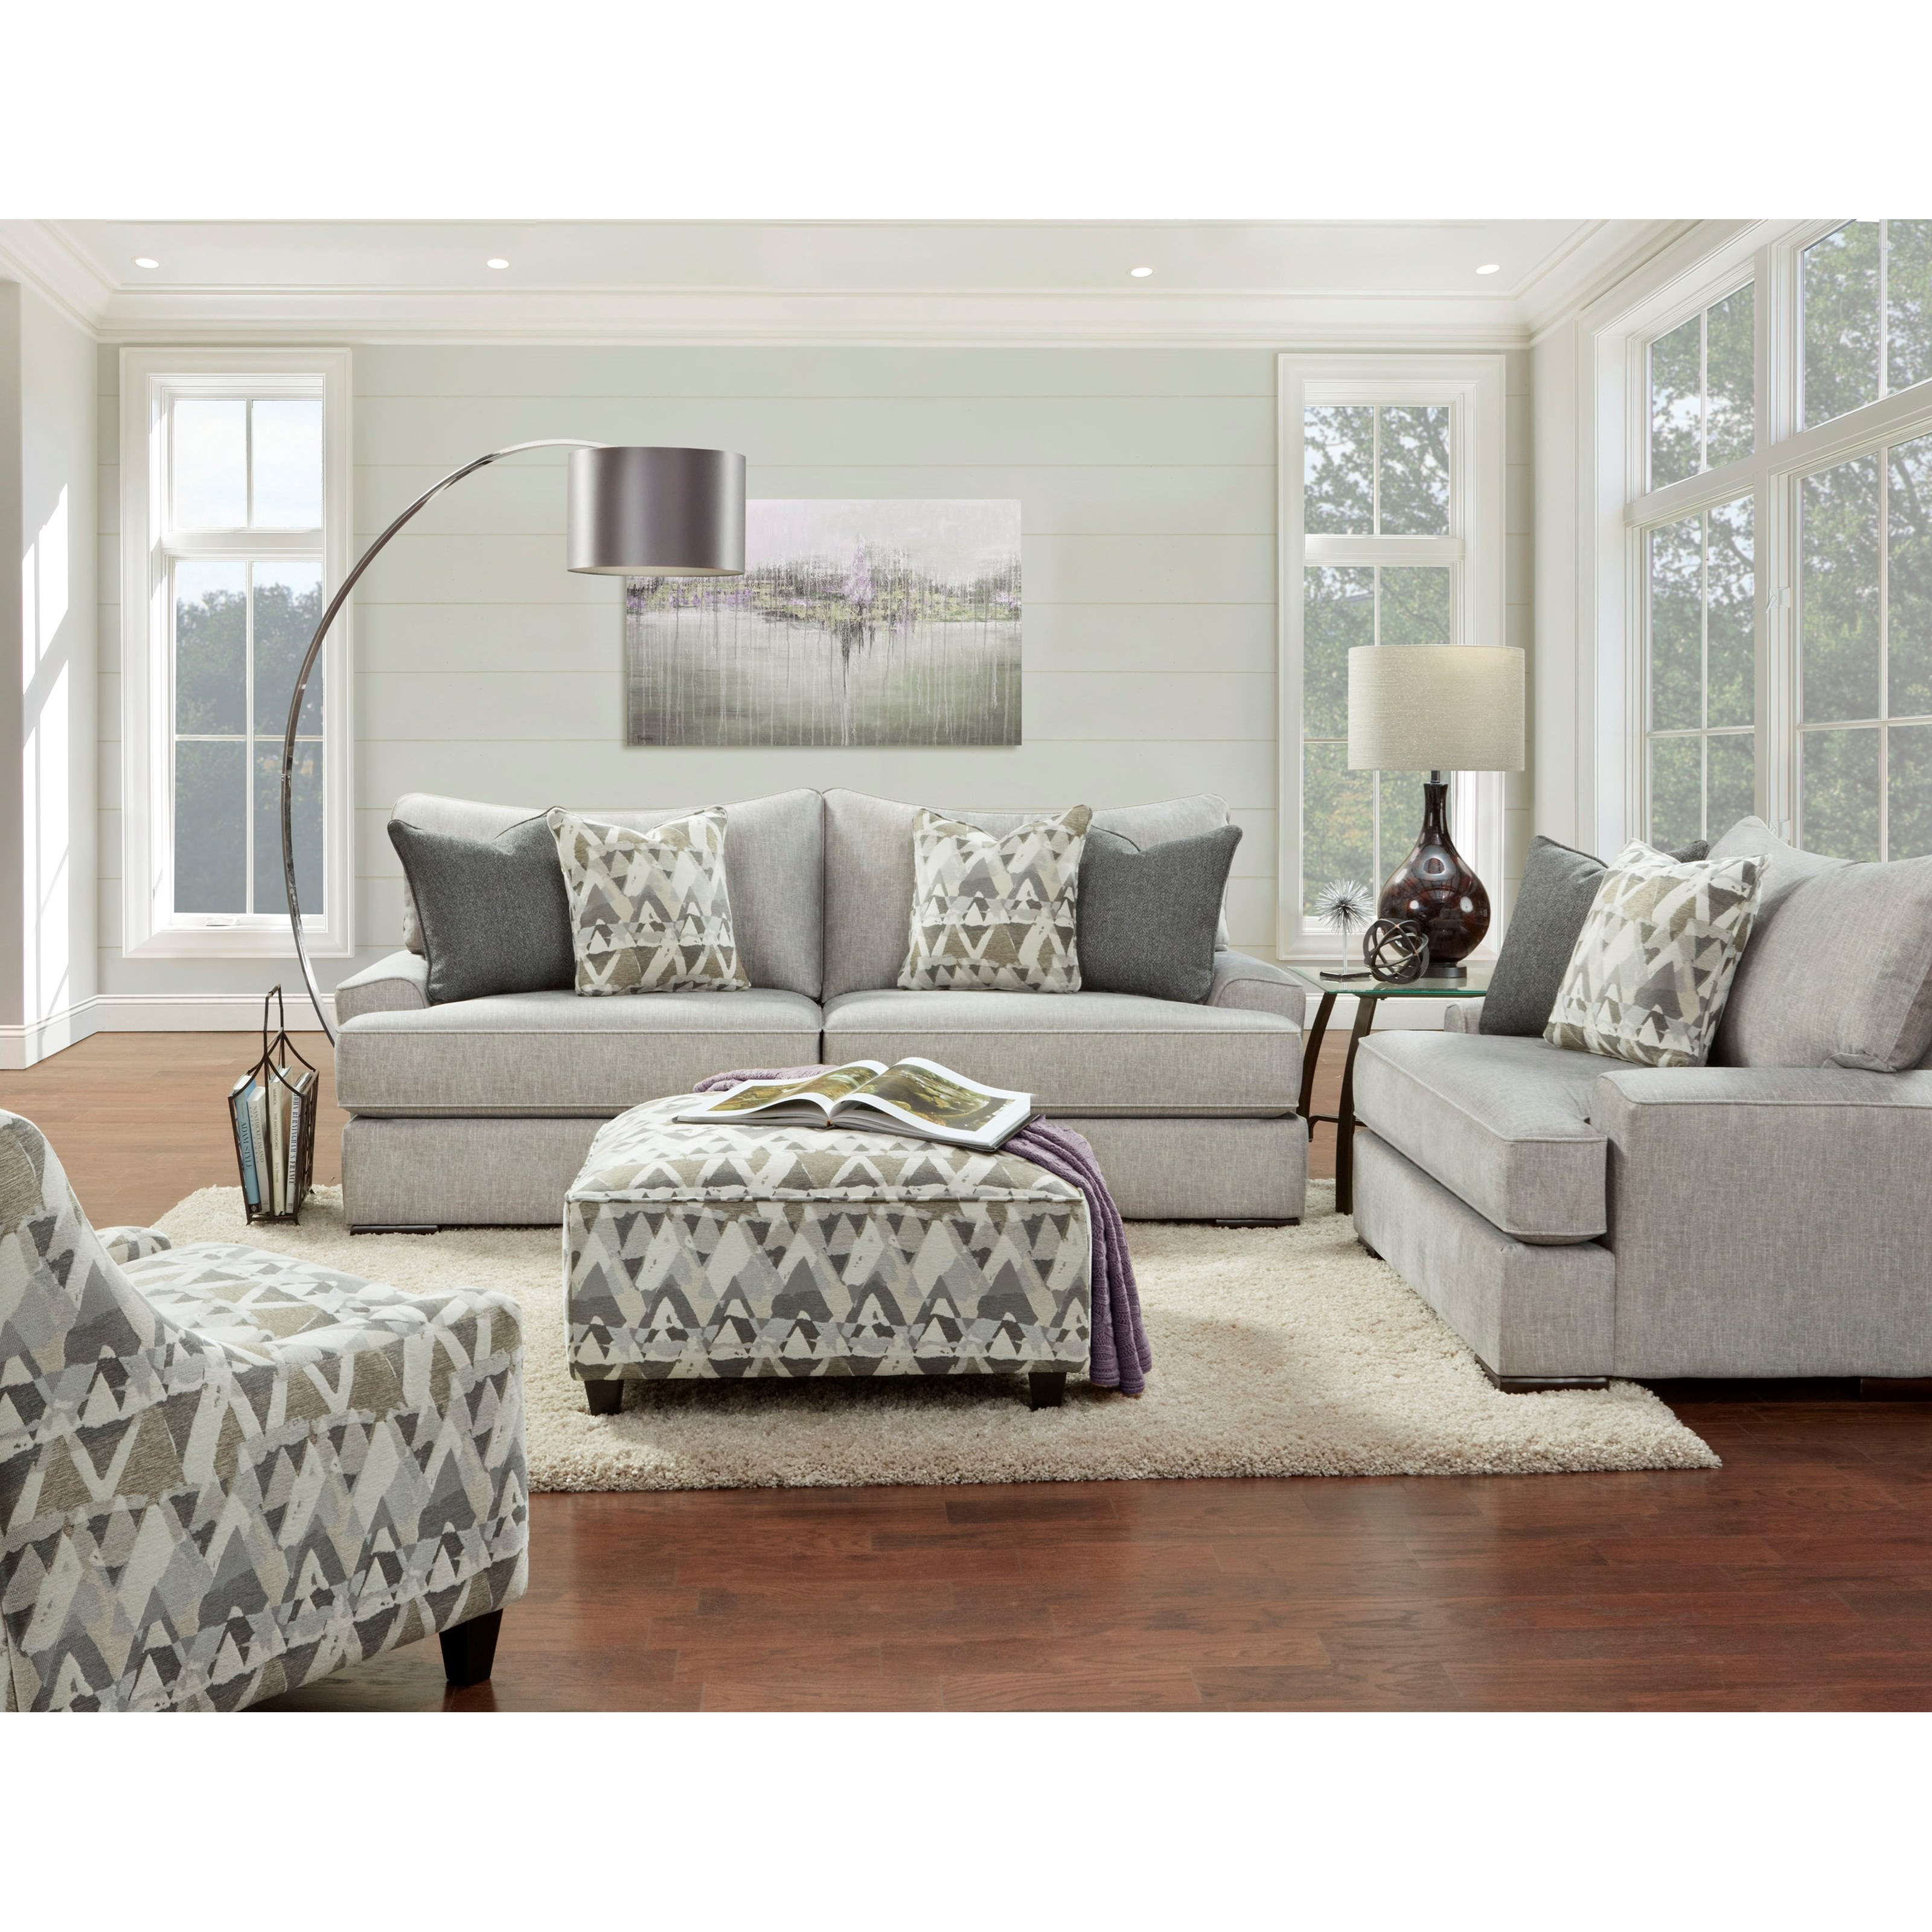 2010 Stationary Living Room Group by FN at Lindy's Furniture Company